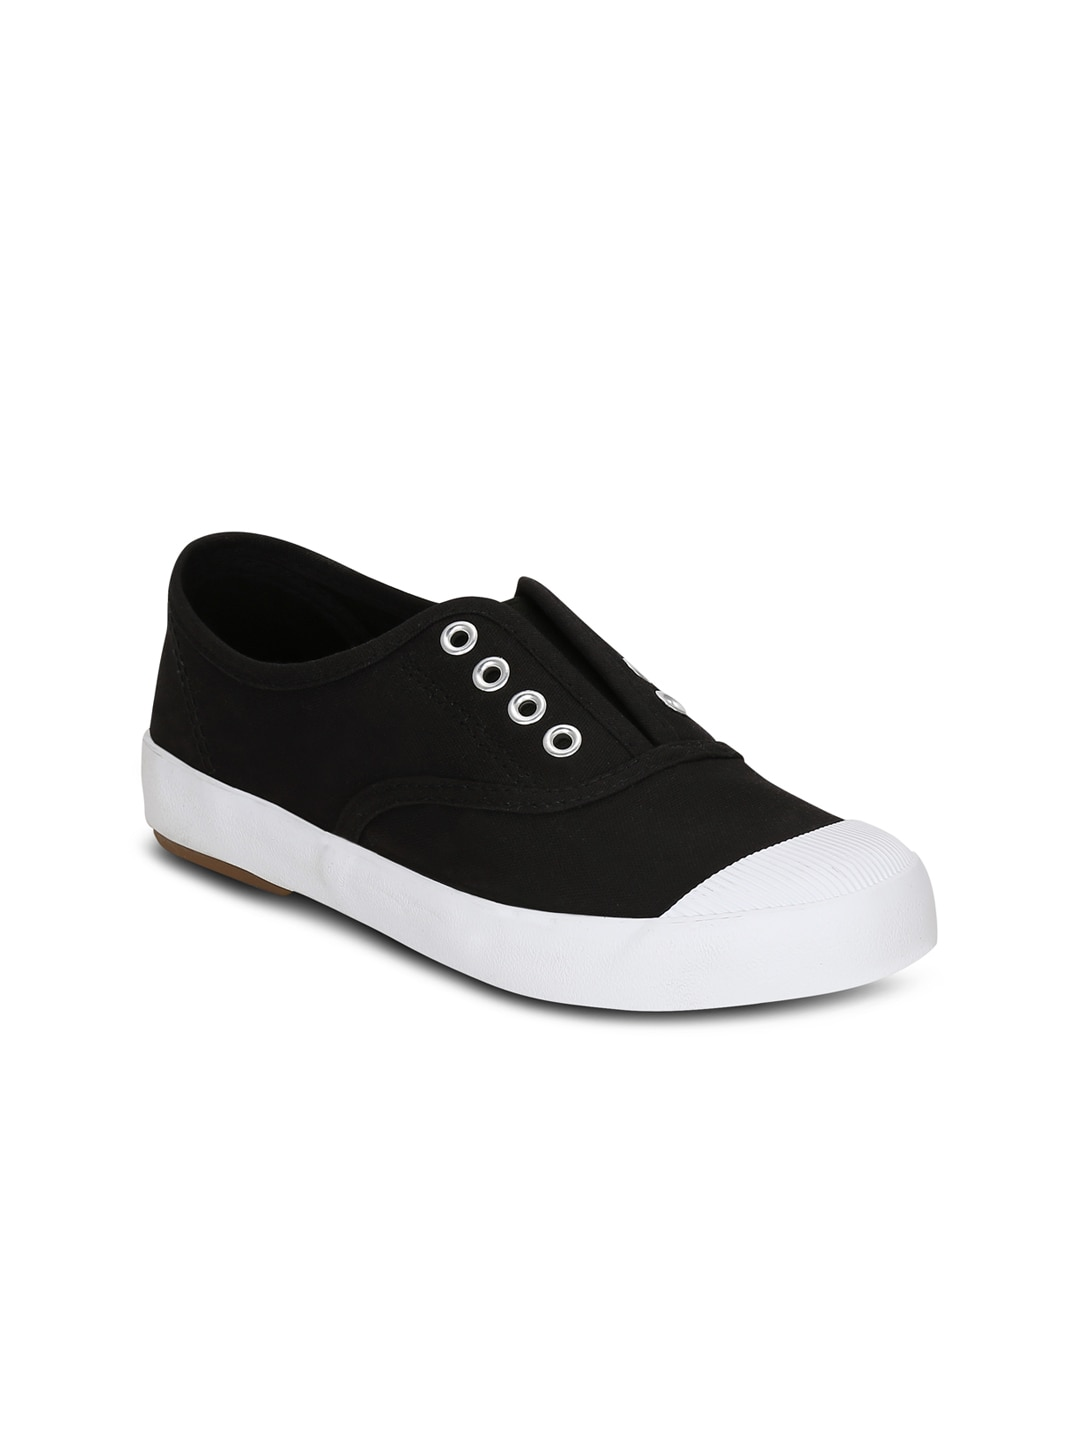 Get Glamr Women Black Slip-On Sneakers image